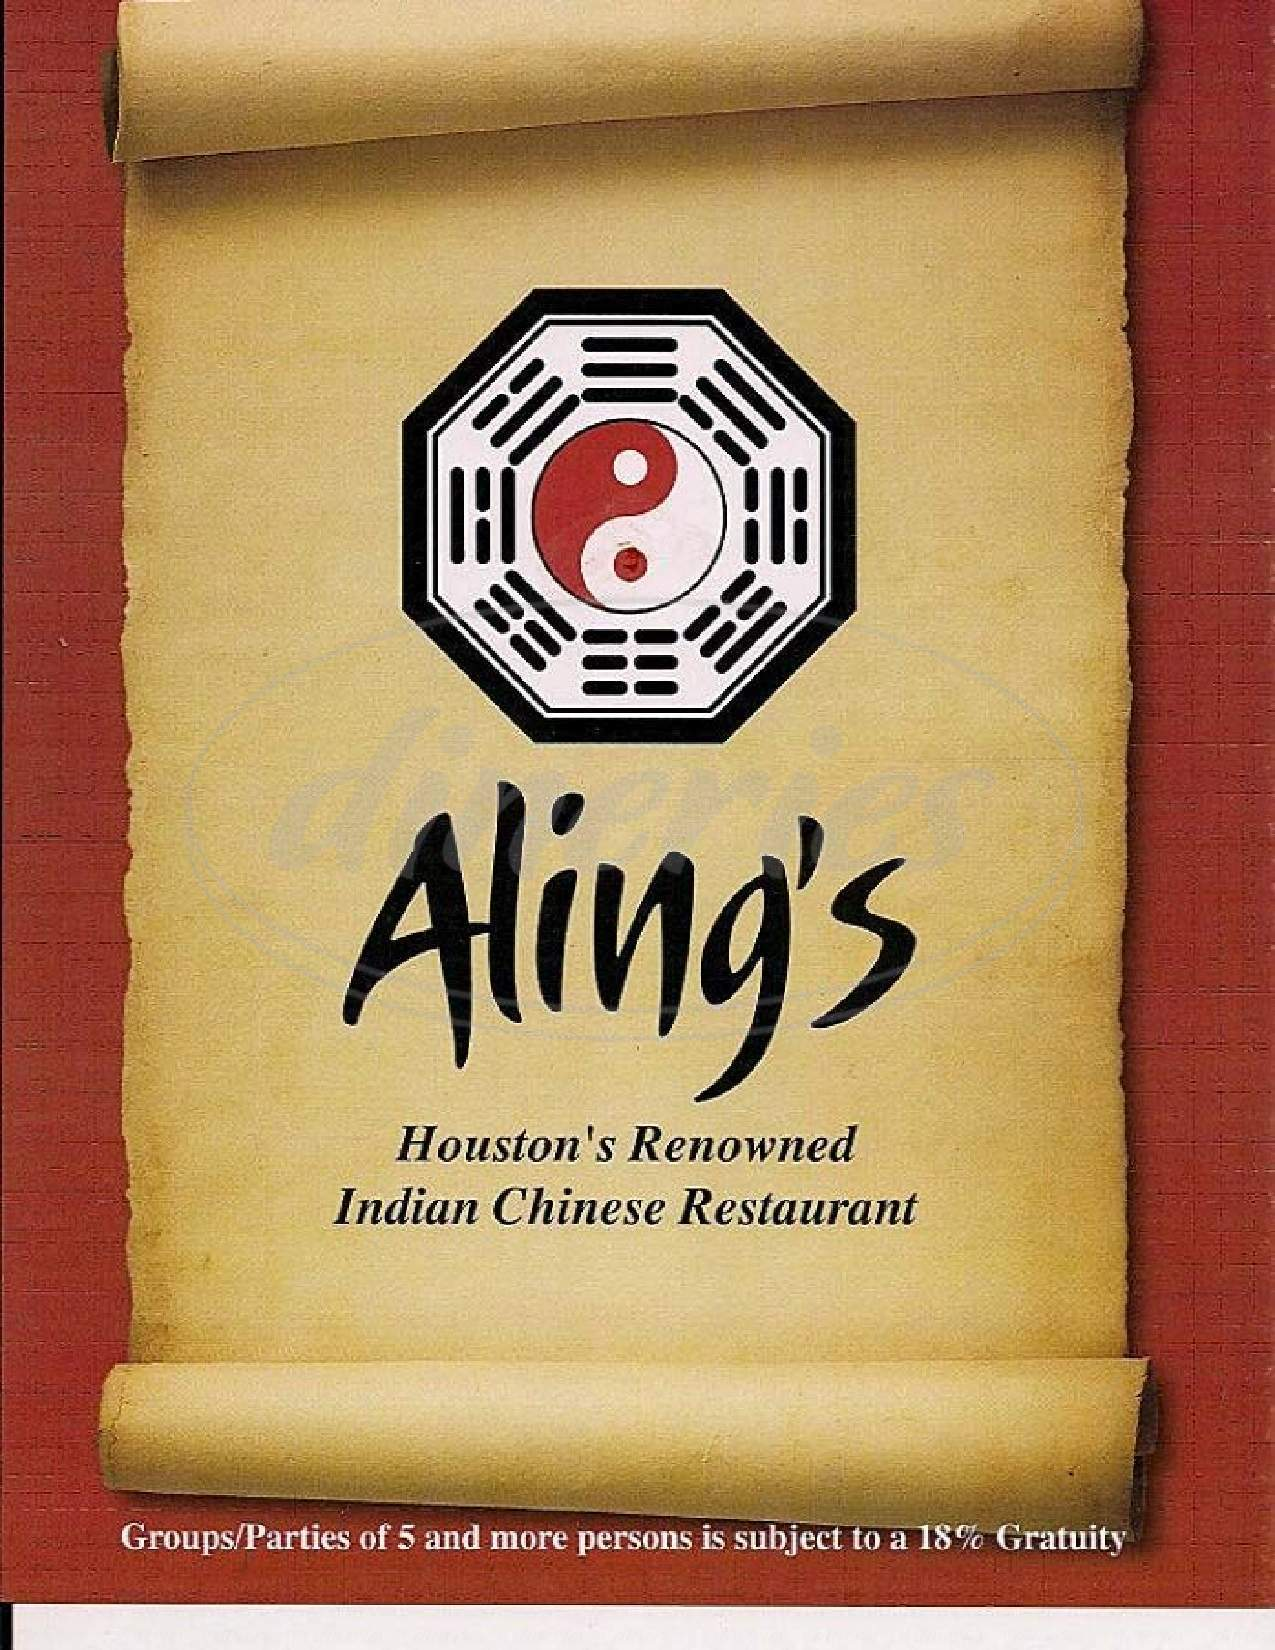 menu for Aling's Hakka Chinese Cuisine